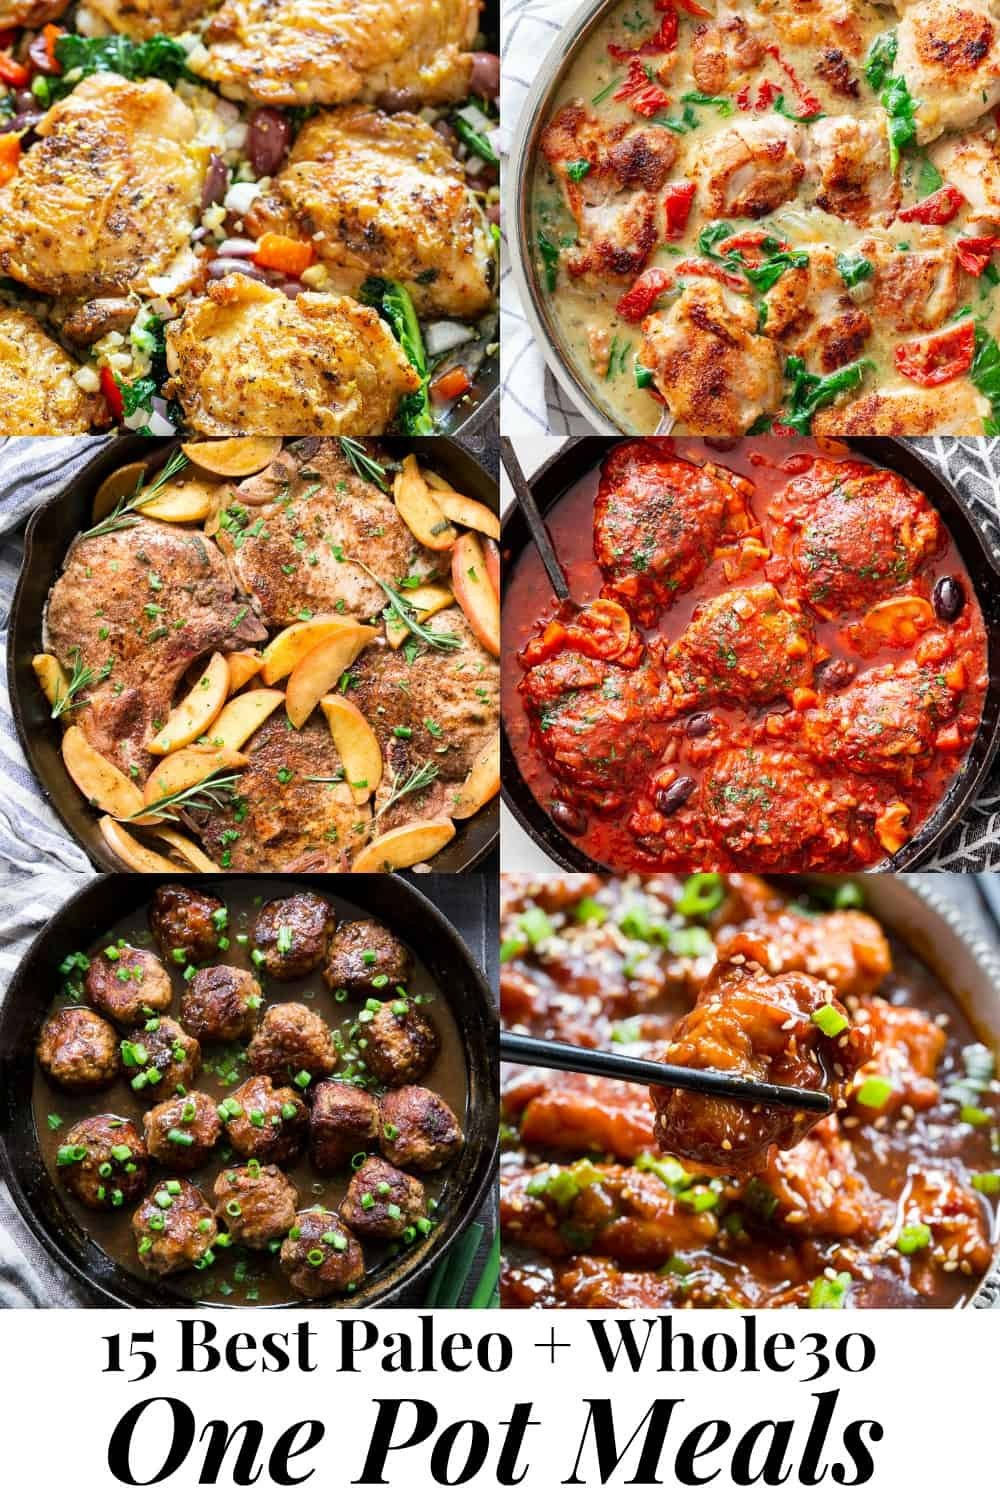 This recipe roundup includes 15 of the best one pot paleo meals featured on Paleo Running Momma!   All are easy and perfect for weekdays when time and energy is lacking.  These one pot meals are also Whole30 compliant and many are low carb and keto friendly.  From creamy tuscan chicken to instant pot chili, there's something to suit everyone's cravings! #paleo #Whole30 #cleaneating